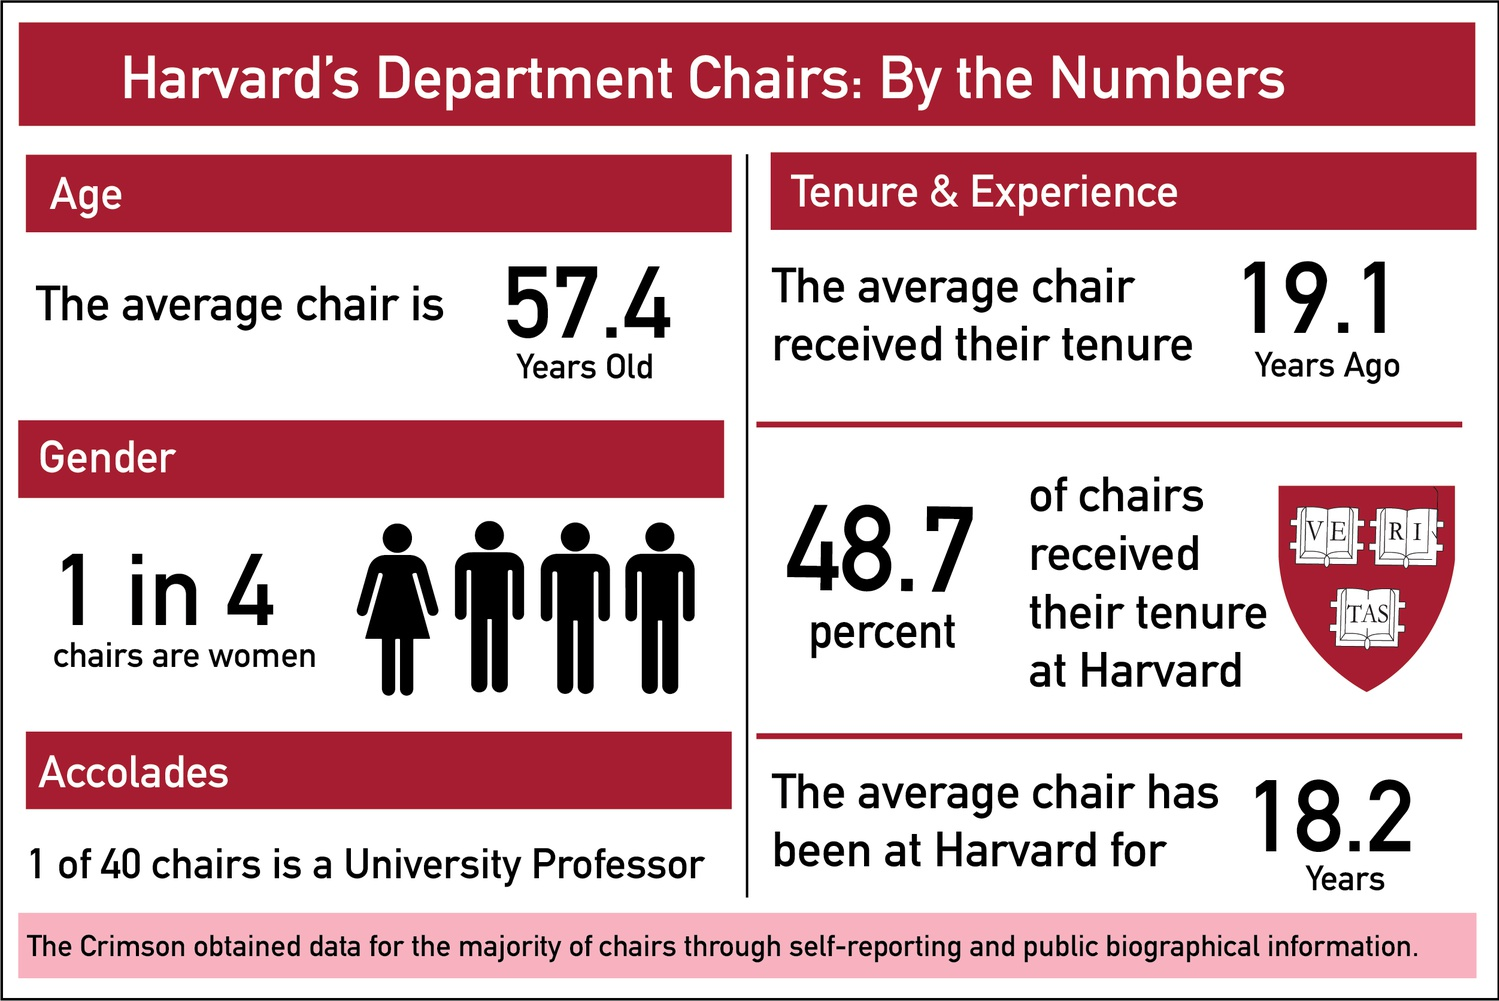 The average department chair received tenure over 19 years ago and has served as a faculty member at Harvard for 18 years.